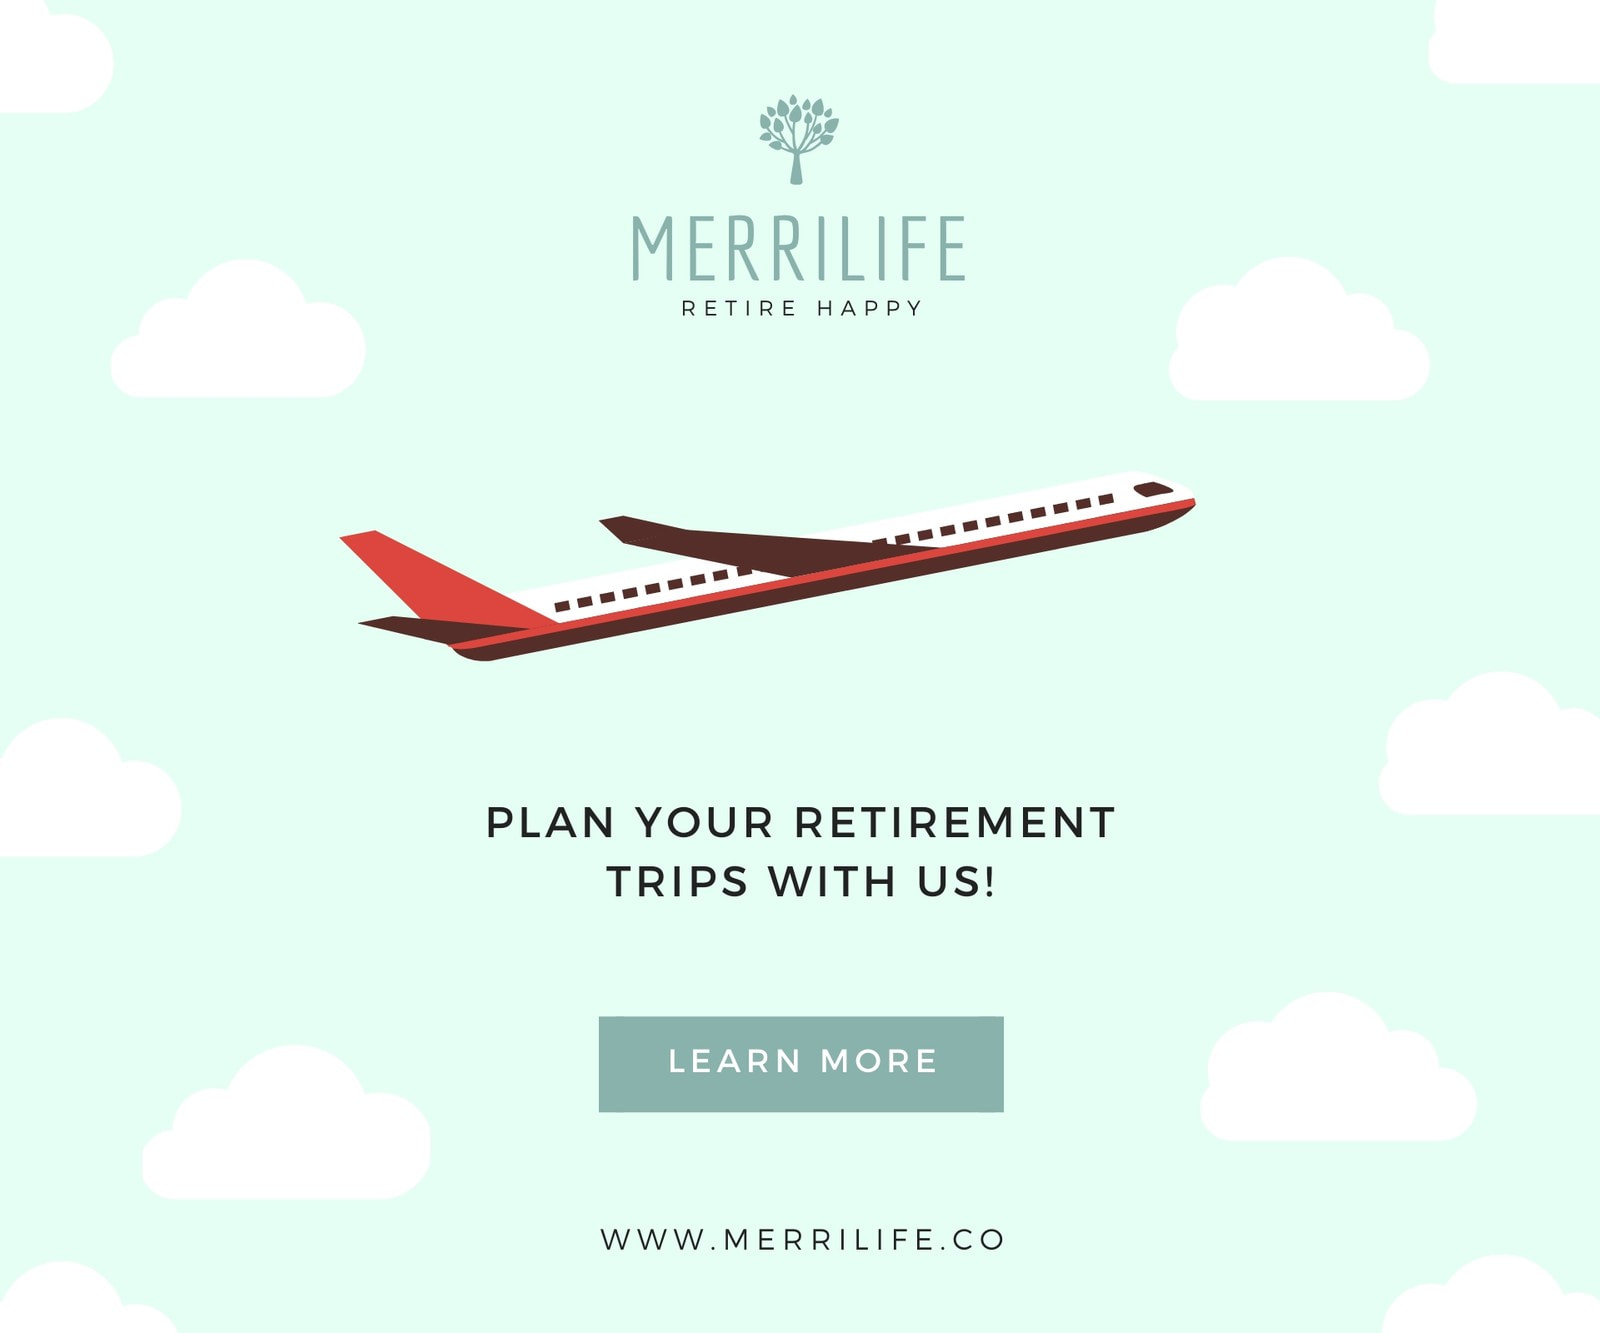 Airplane Retirement Medium Rectangle Banner